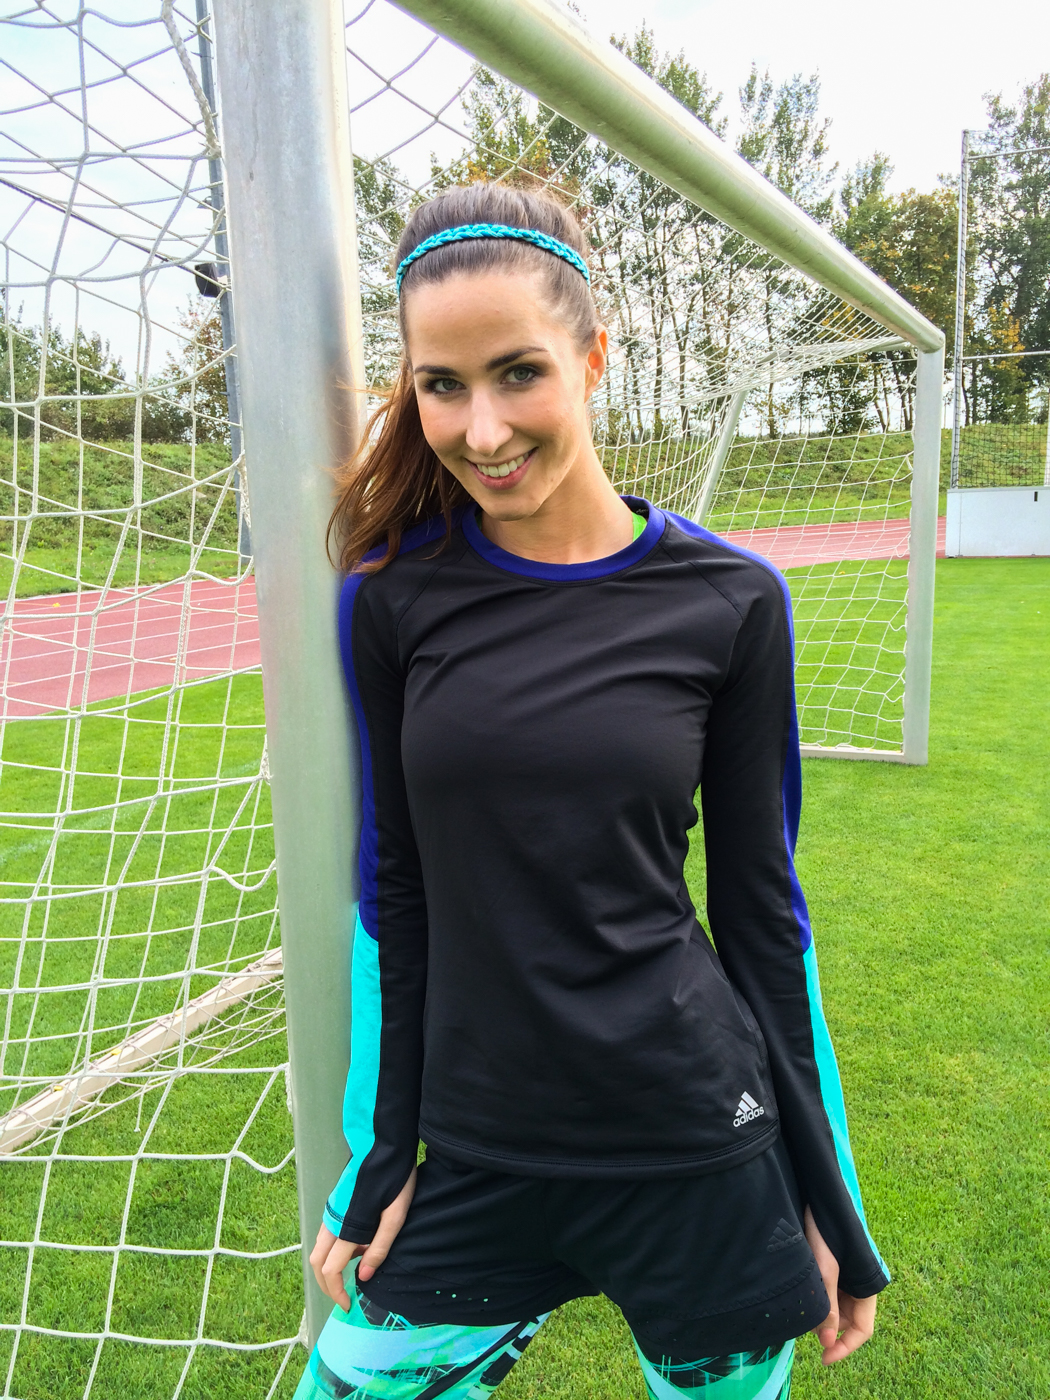 Adidas-MiCoach-Behind_the_scenes-Shooting-Fitnessmodel-4